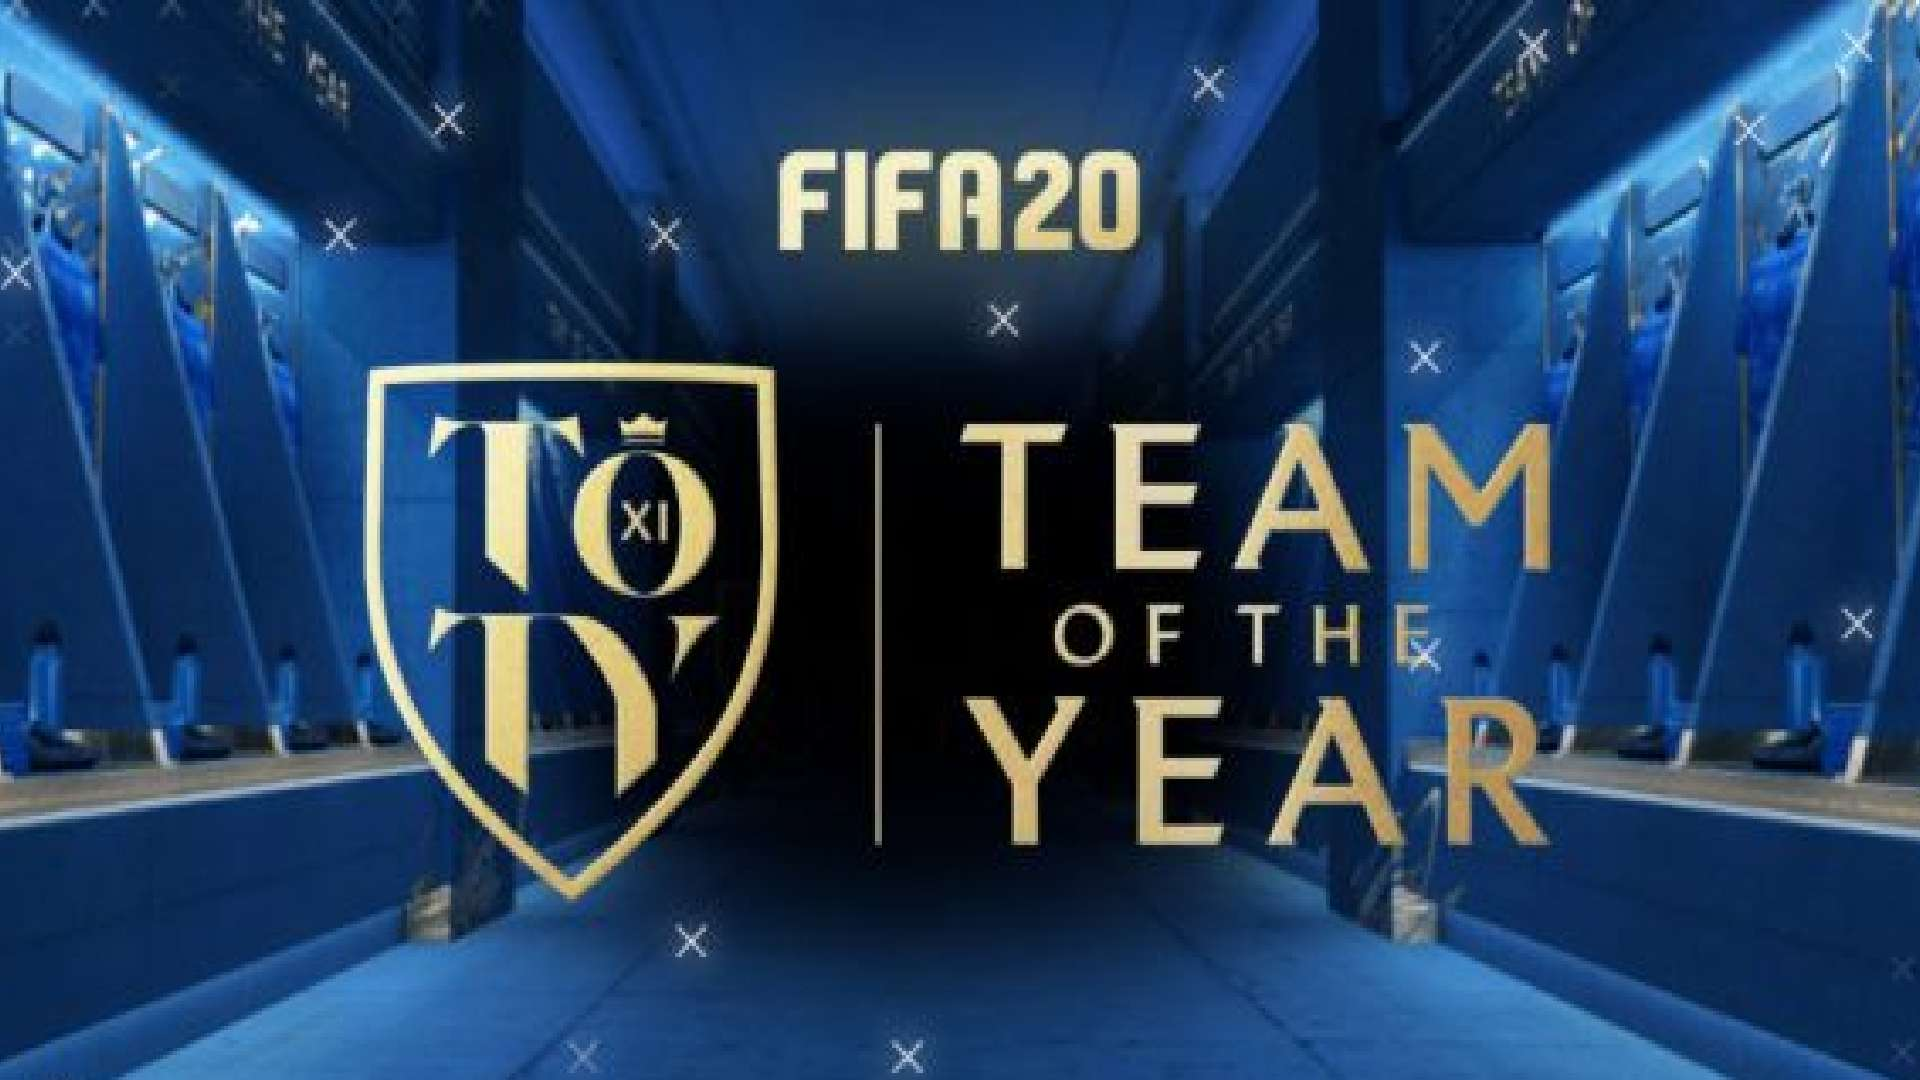 Conoce los jugadores del Team of the Year de FIFA 20